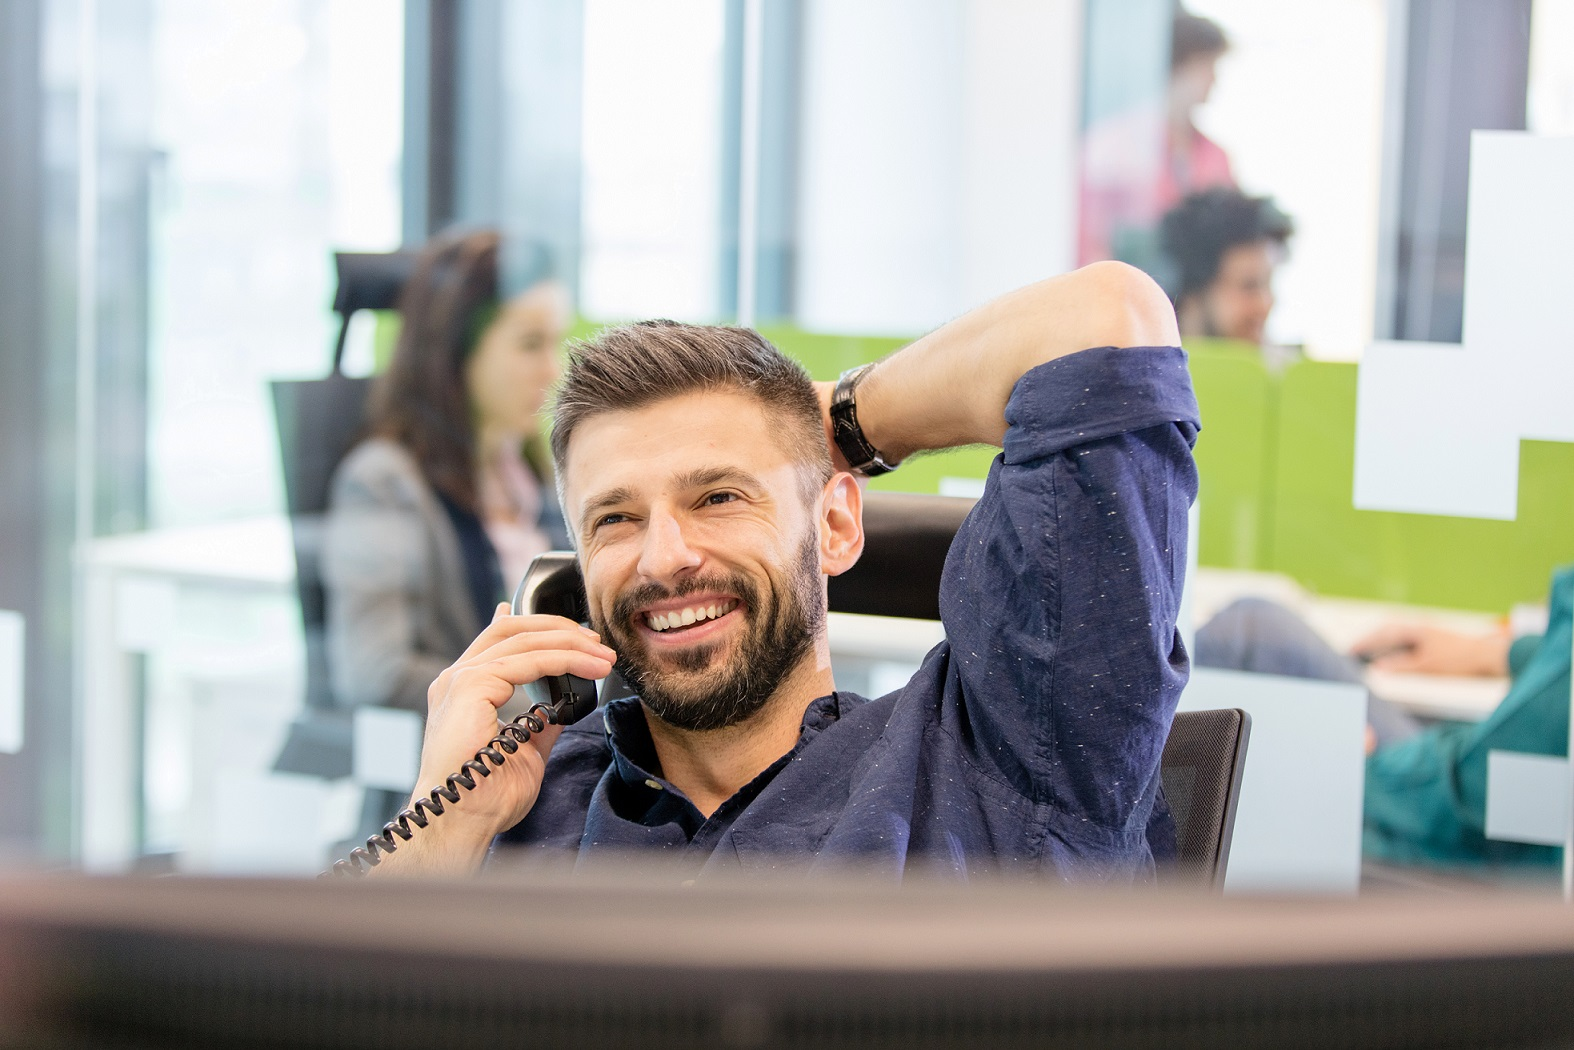 Man leaning back on chair in office while on the telephone.